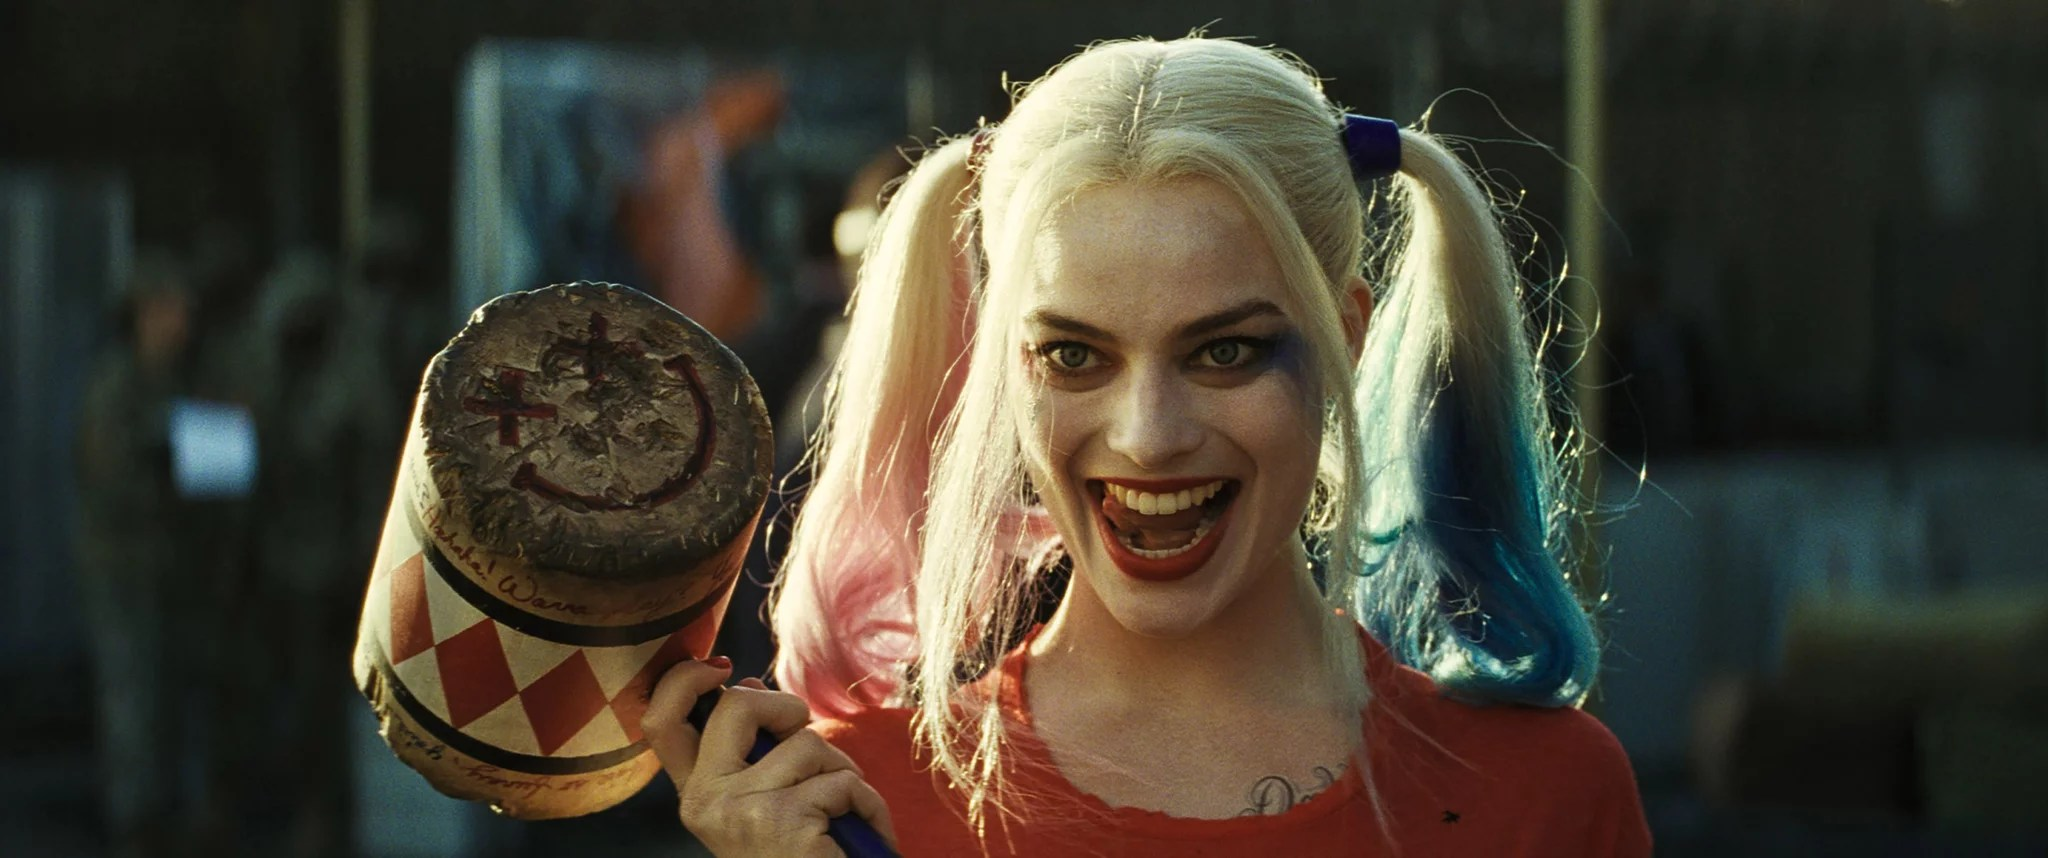 Suicide Squad Best Makeup And Hairstyling At 2017 Oscars